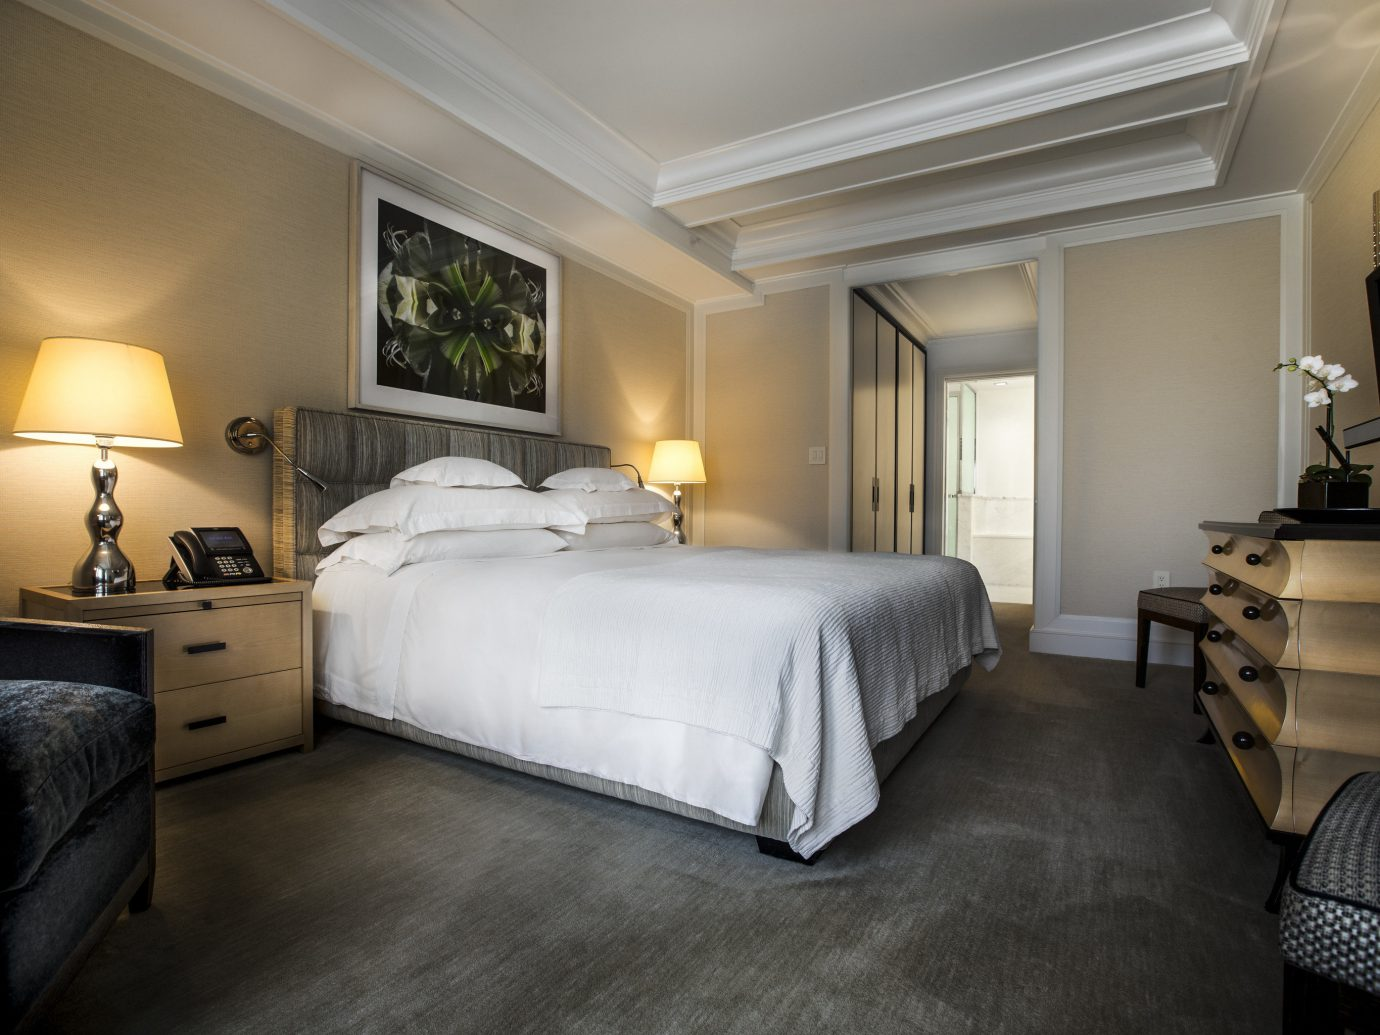 Bedroom at The Mark hotel